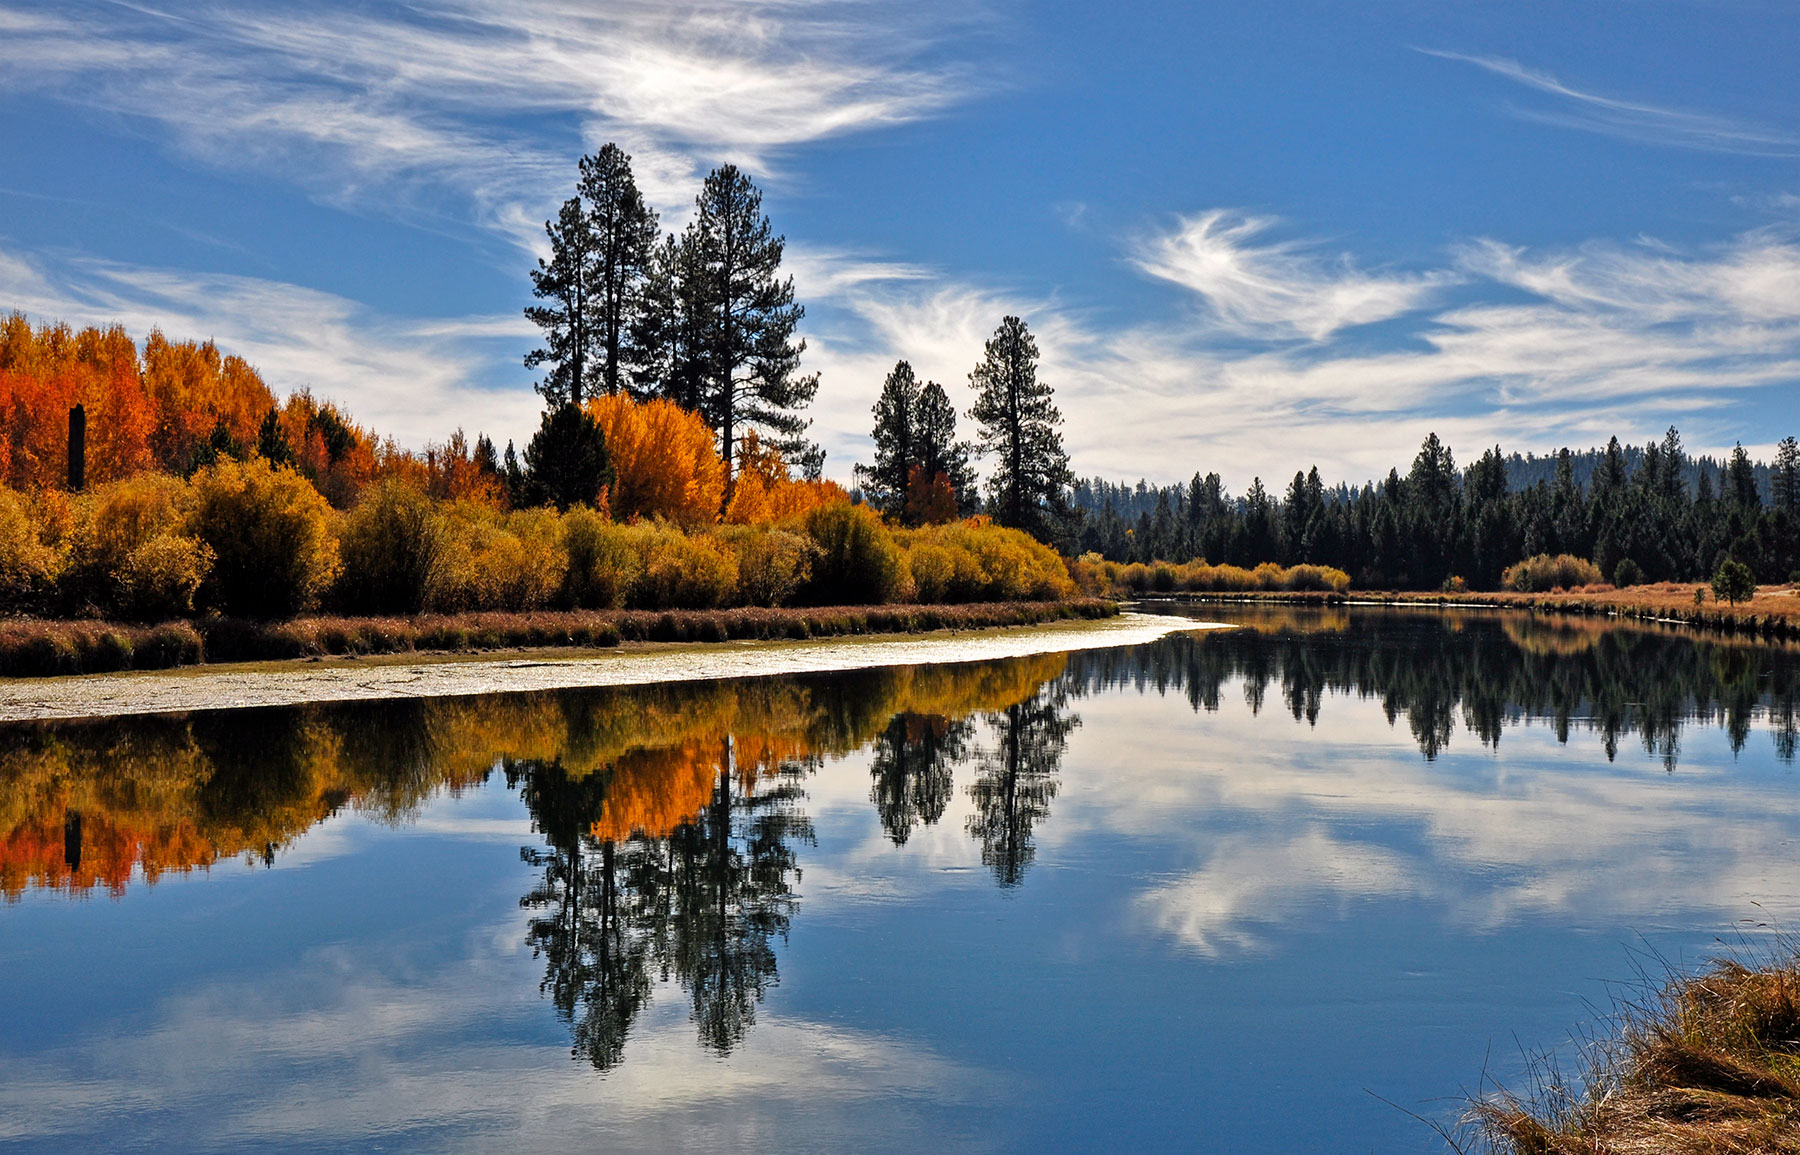 The Deschutes River near Bend, Oregon